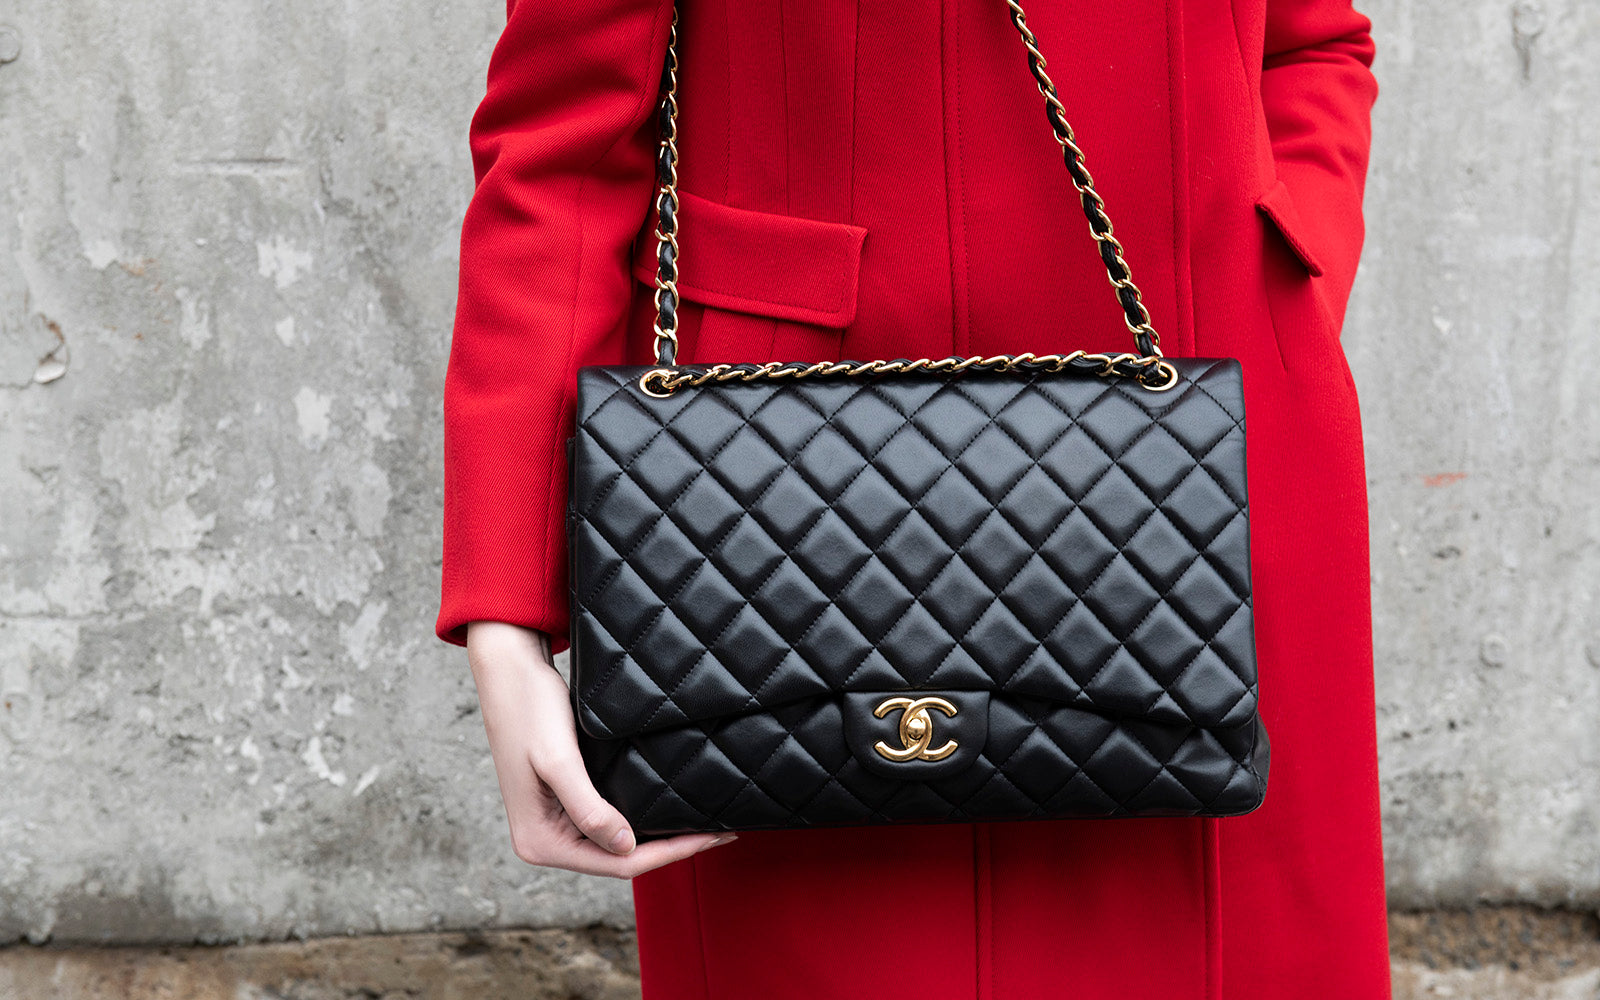 Discover authentic preowned Chanel handbags in Canada